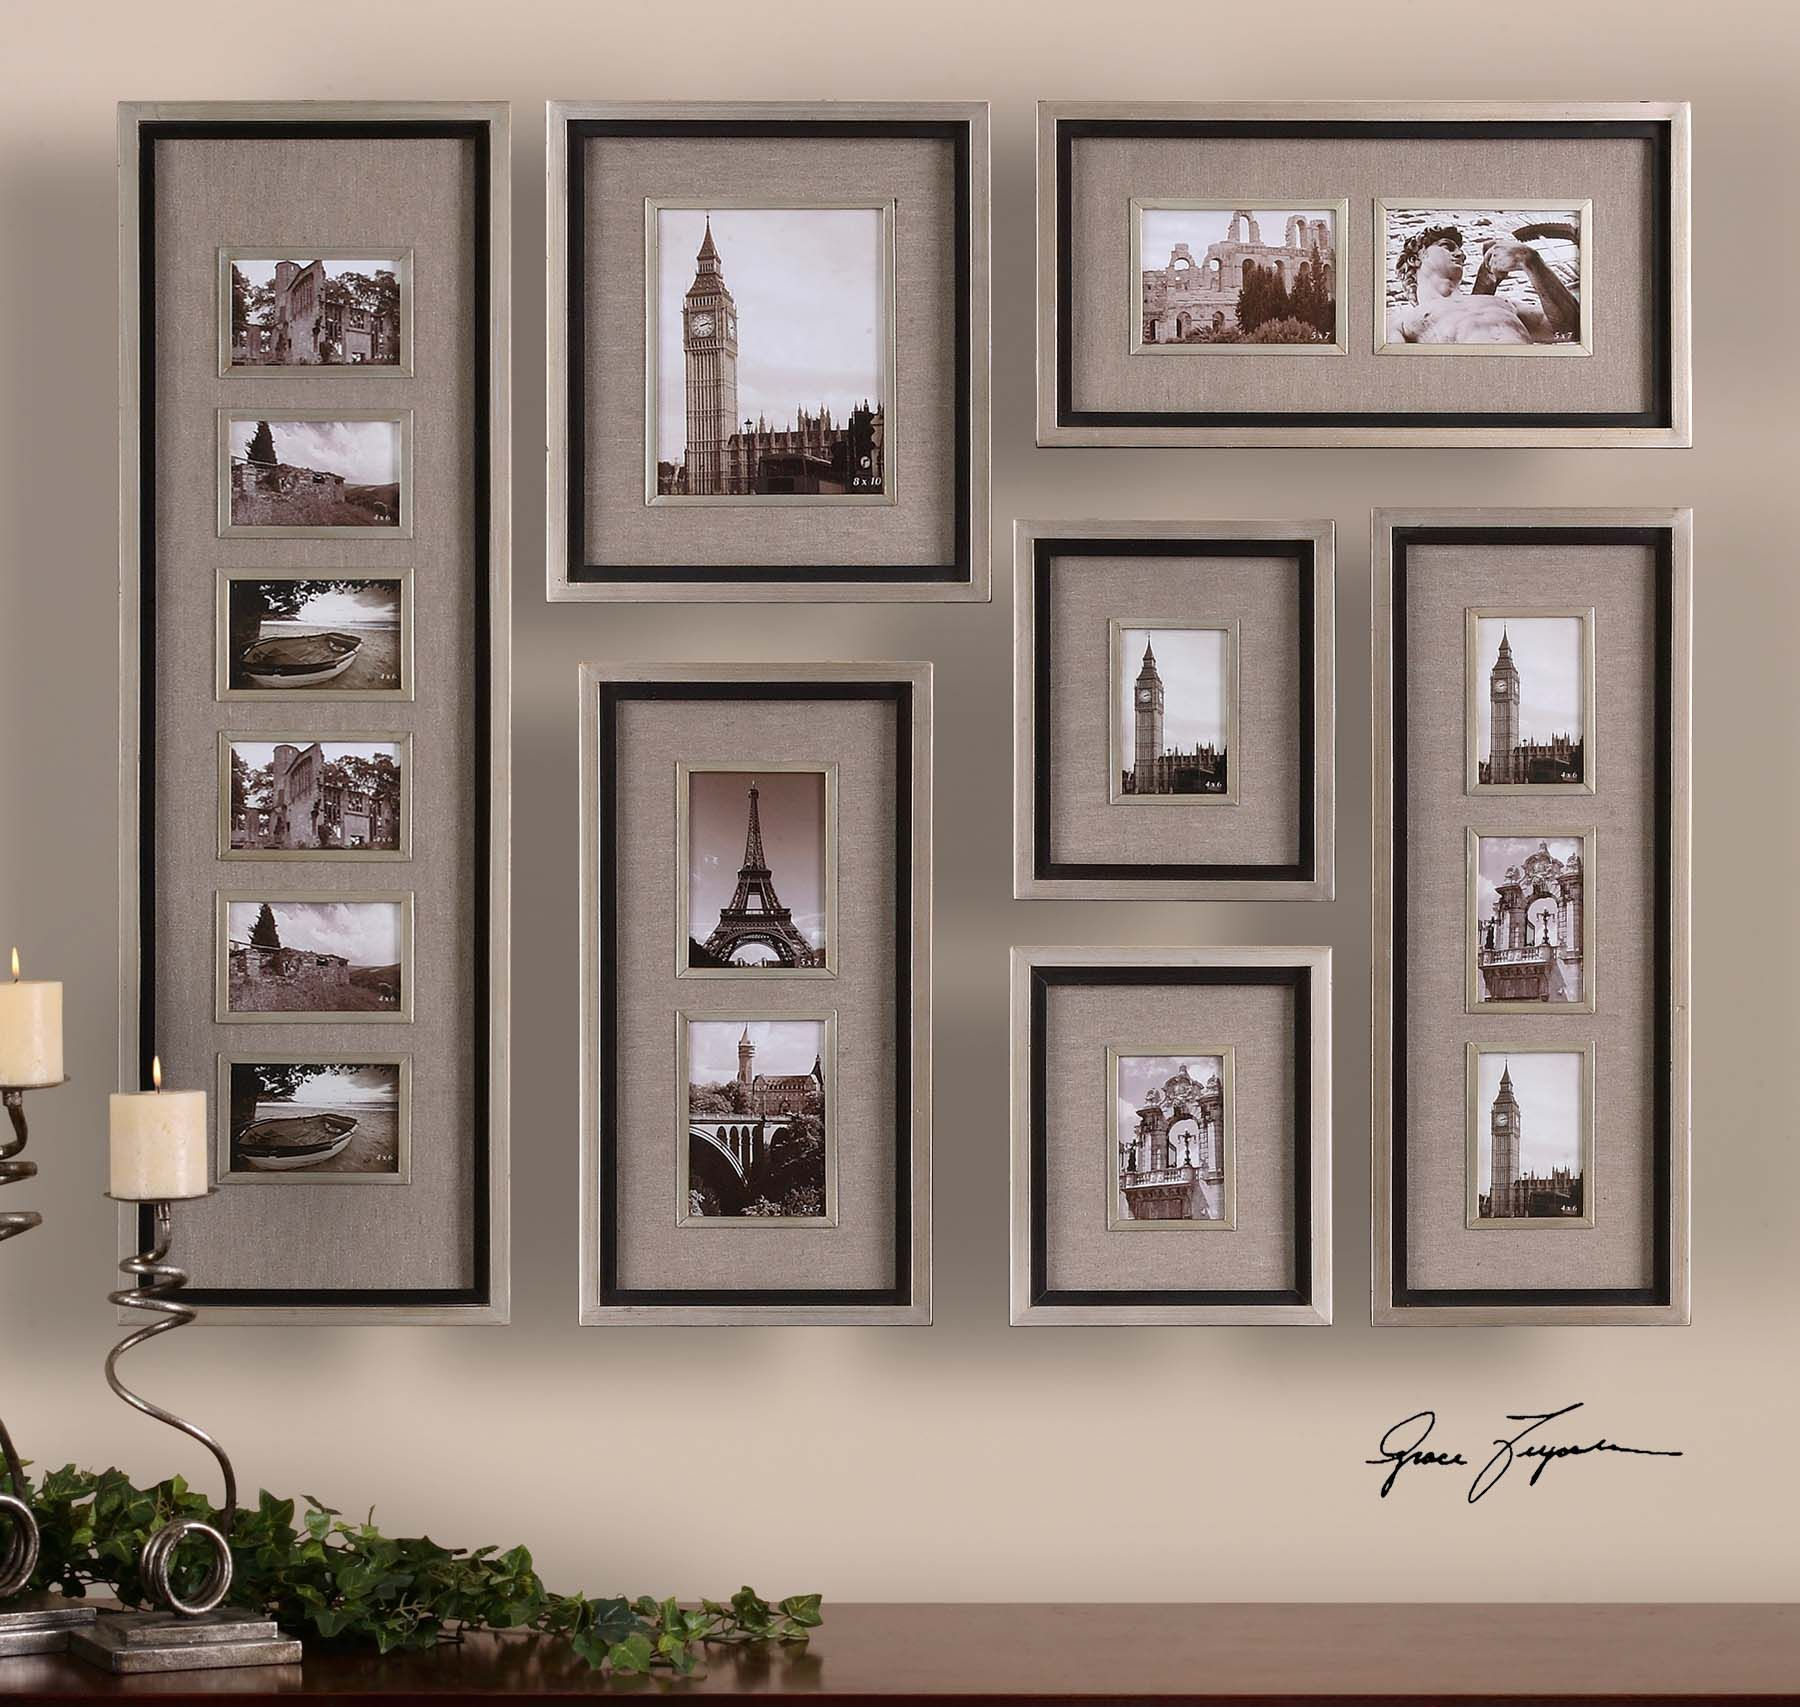 Uttermost massena photo frame collage s7 14458 uttermost uttermost massena photo frame collage set of 7 14458 jeuxipadfo Image collections